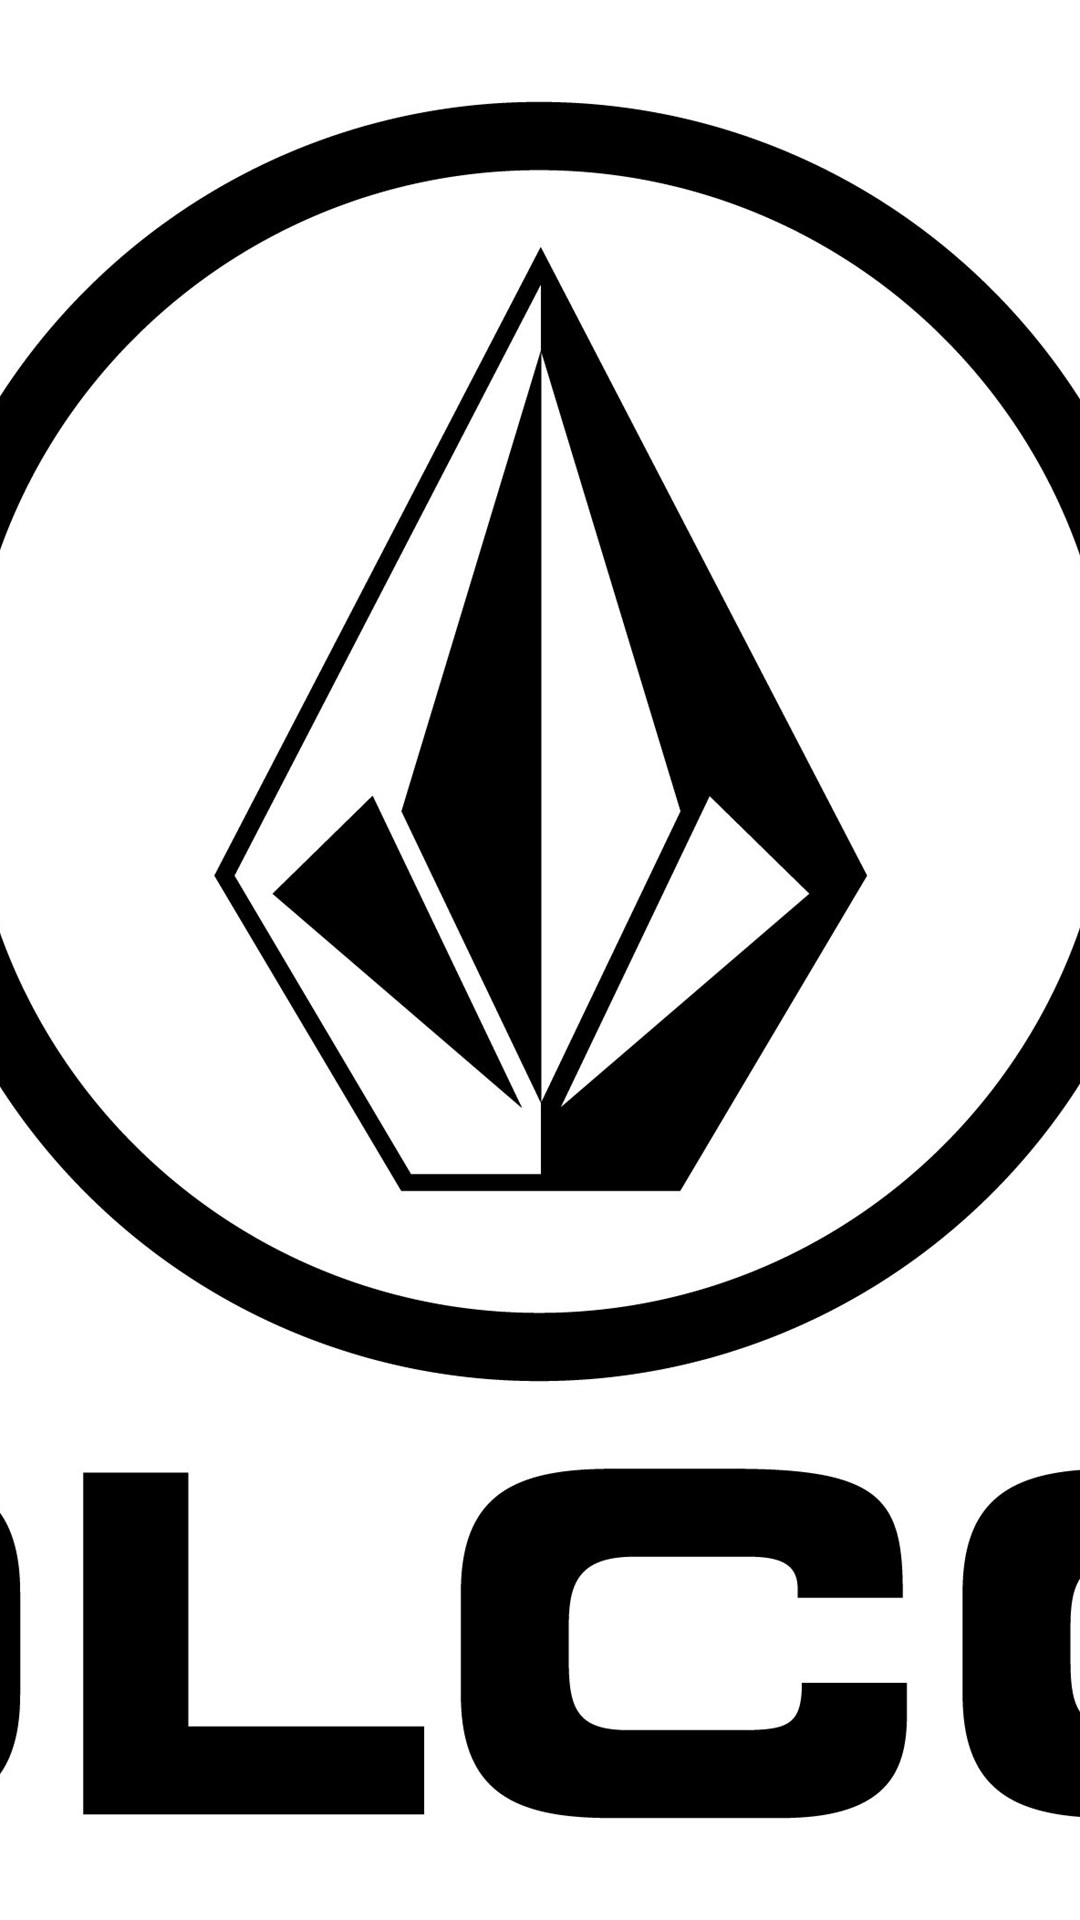 Volcom logo wallpapers desktop background mobile android tablet thecheapjerseys Gallery